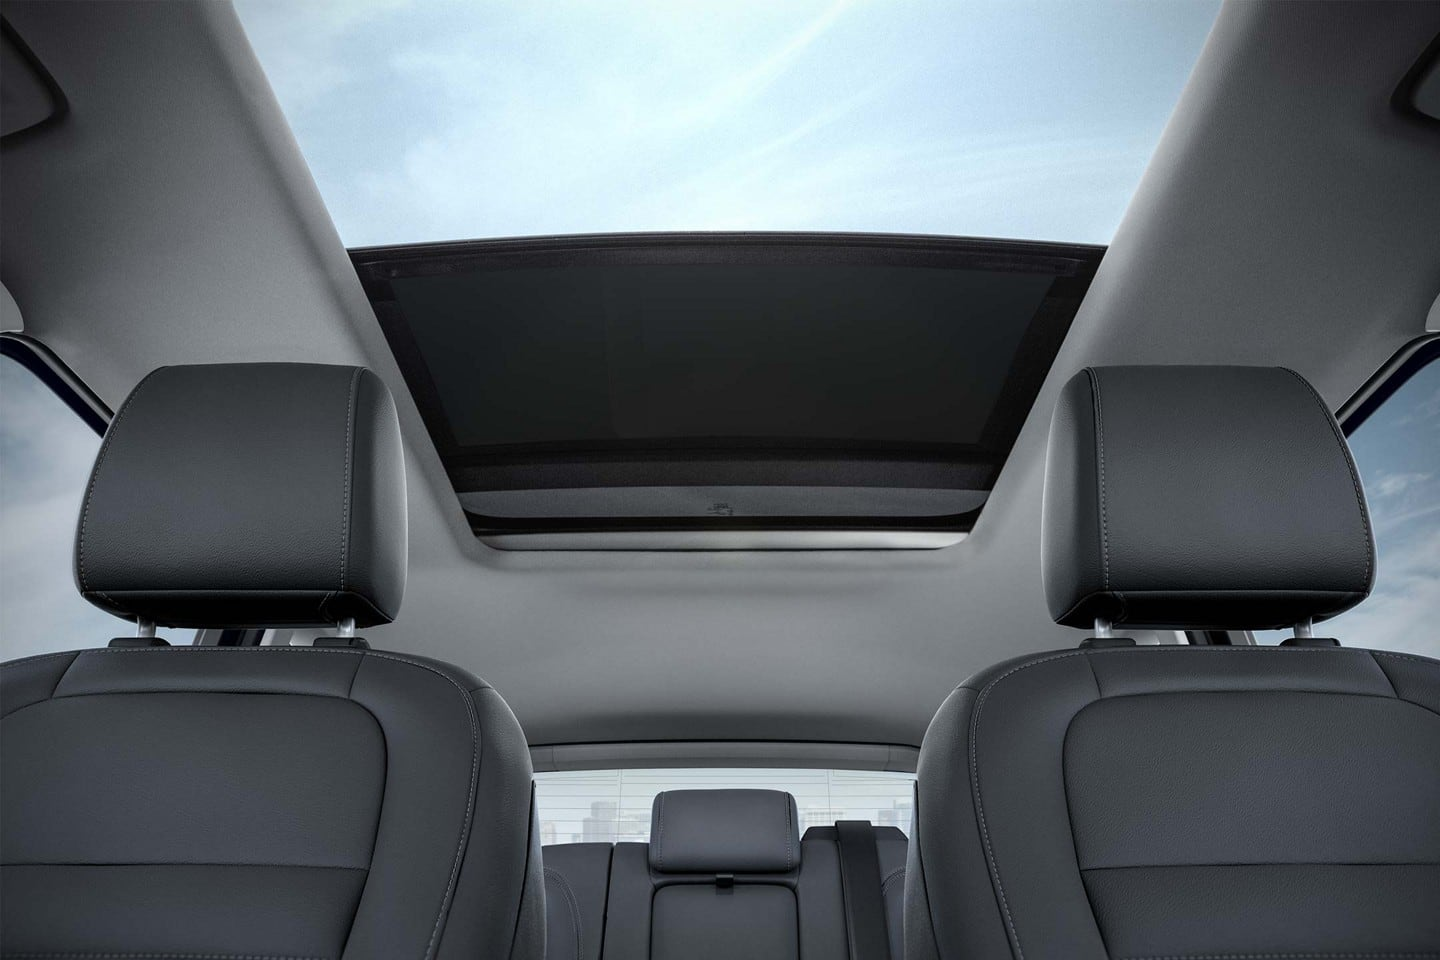 2019 Ford Escape's Panoramic Vista Roof